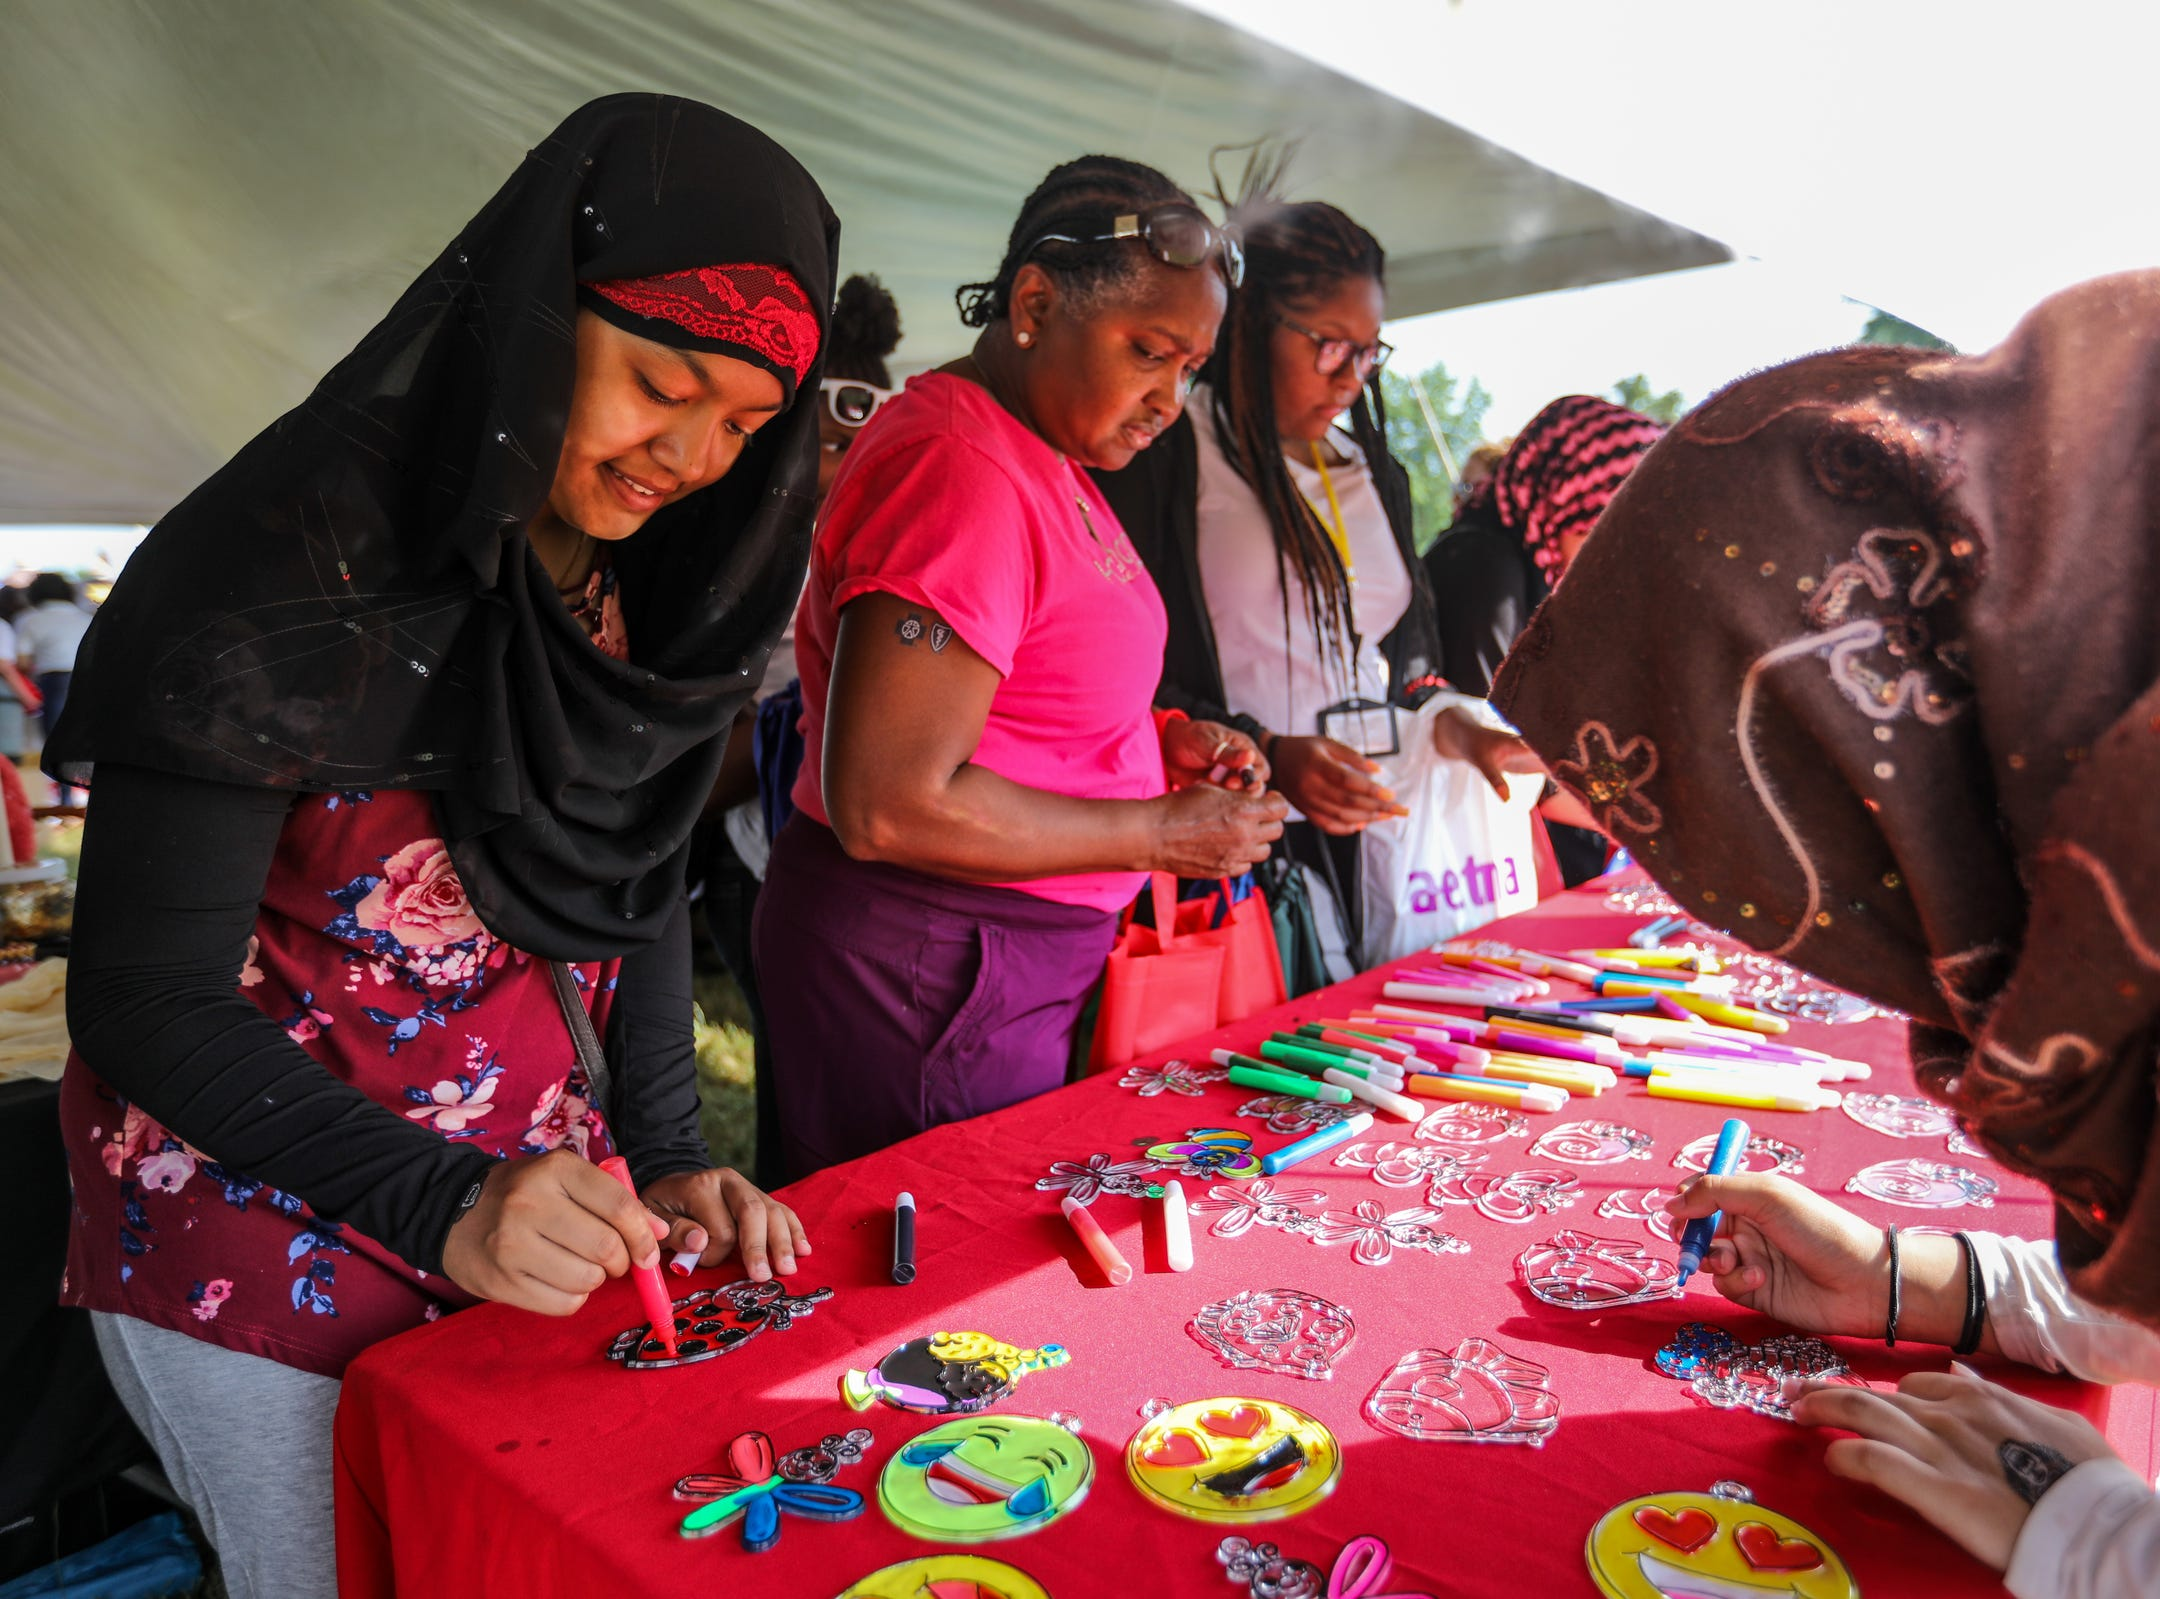 Farhana Chowdhury, 18, of Hamtramck colors in a sun catcher at the VSA Michigan table in the education tent during Metro Detroit Youth Day at Belle Isle in Detroit on Wednesday, July 11, 2018.